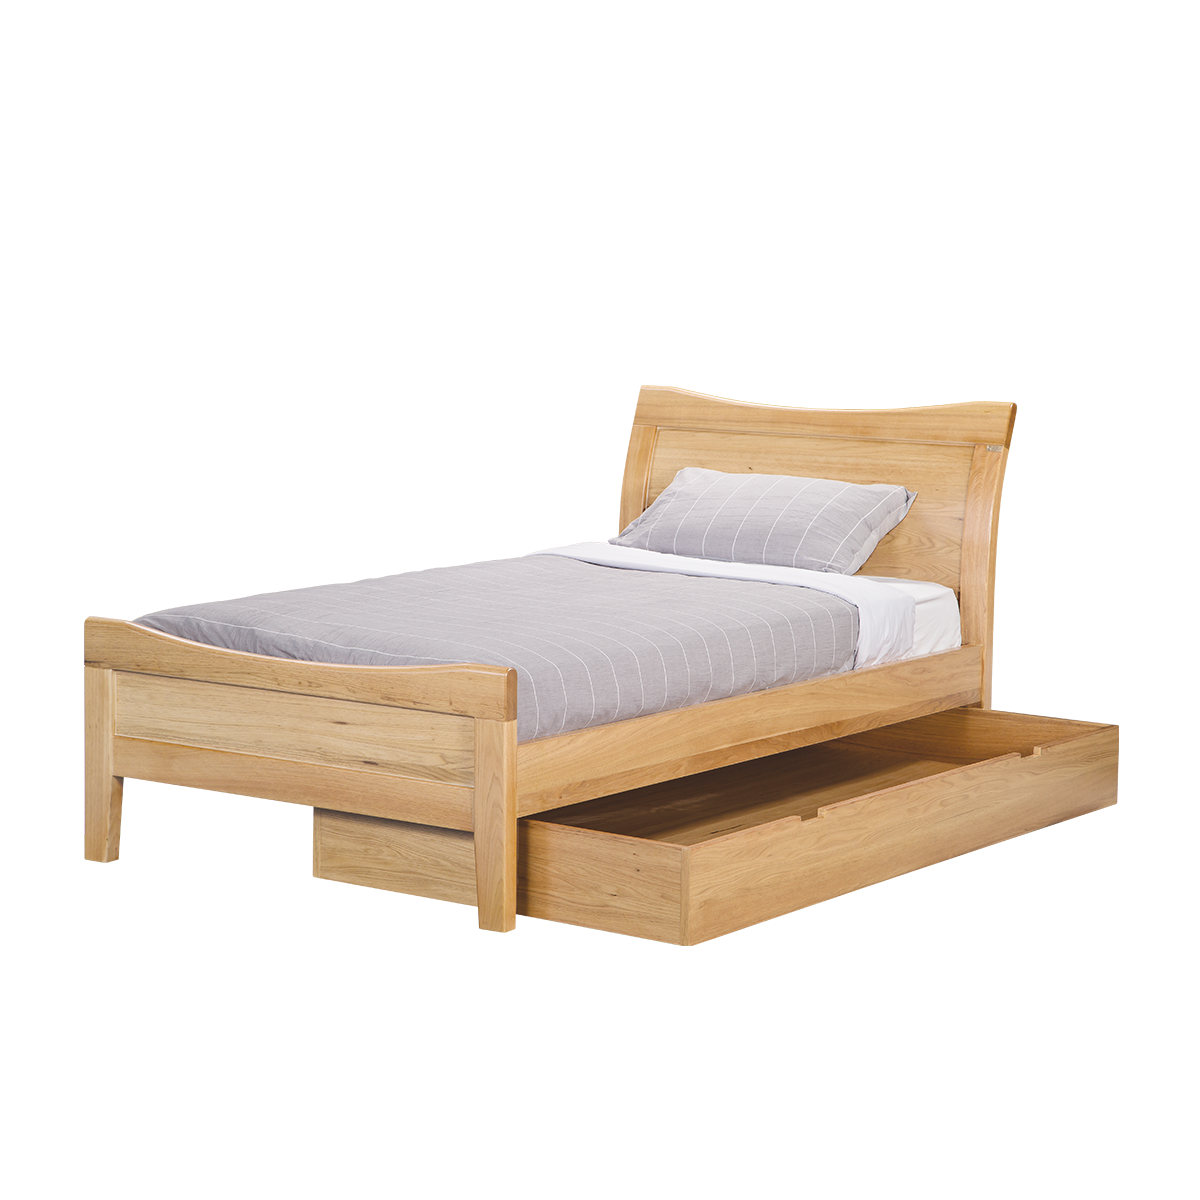 Copen Bed Bench Gy4001